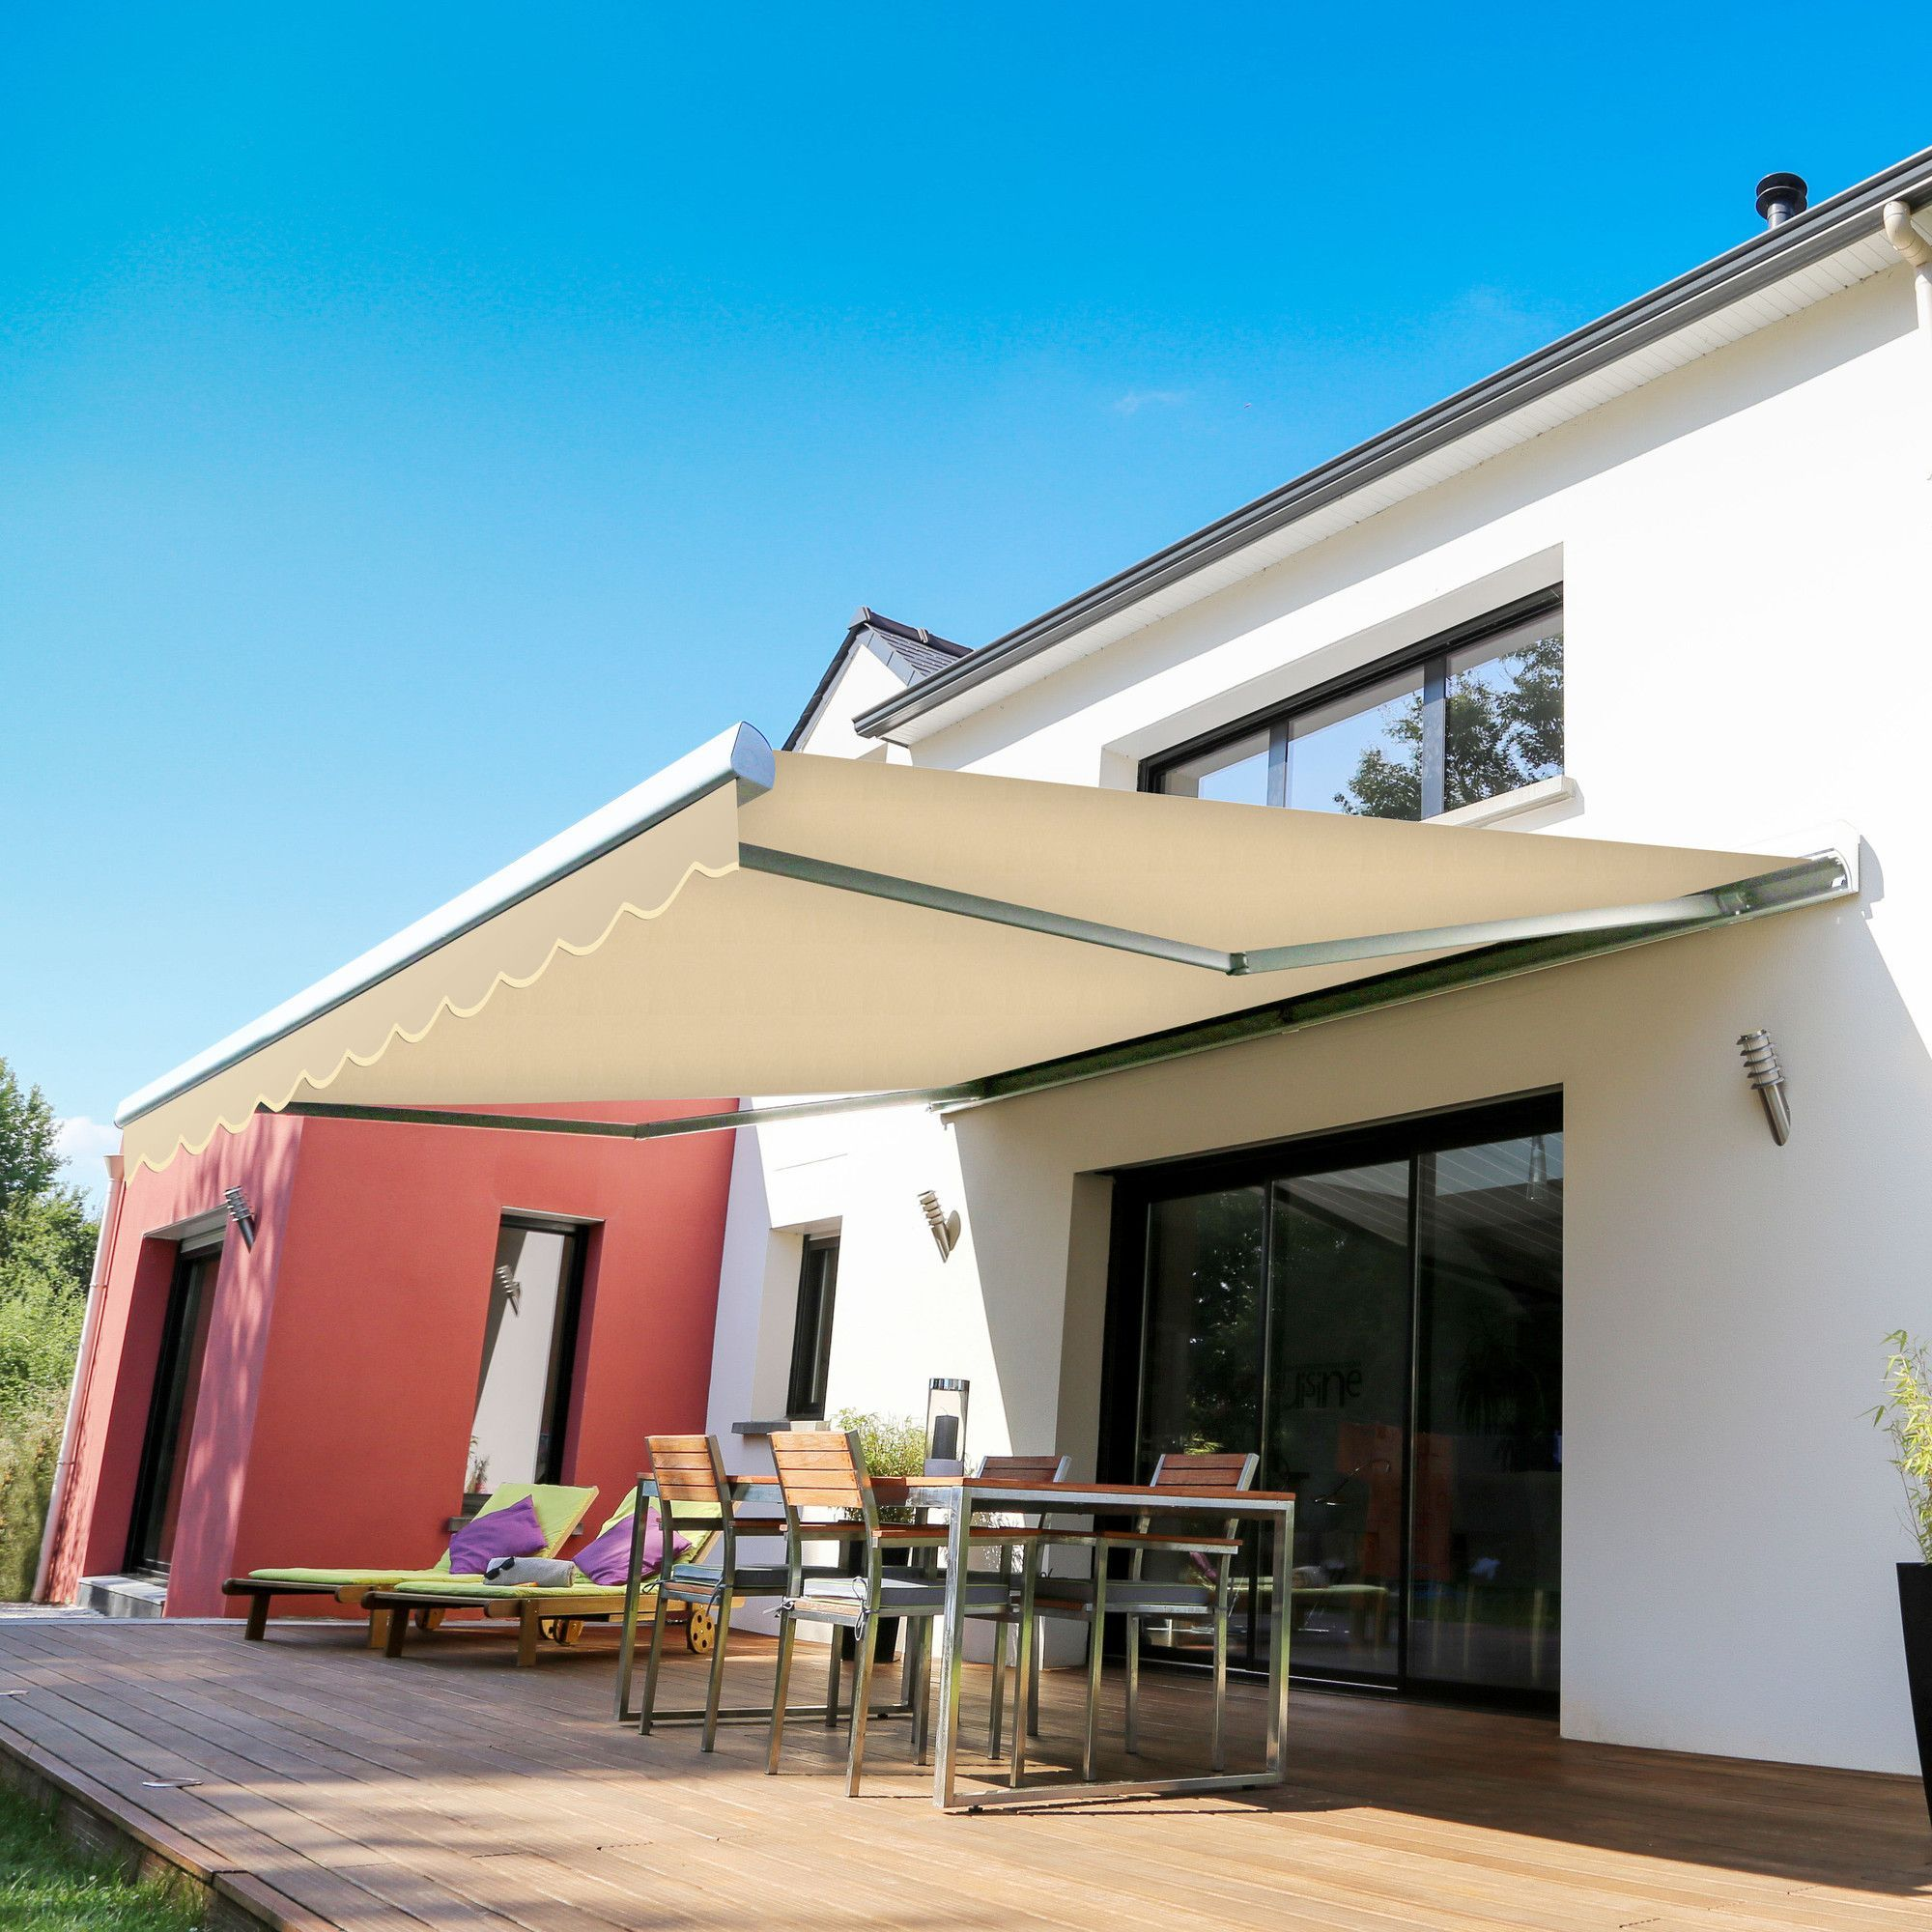 awnings simple sede image for revista easy of patio awning decks retractable ideas design